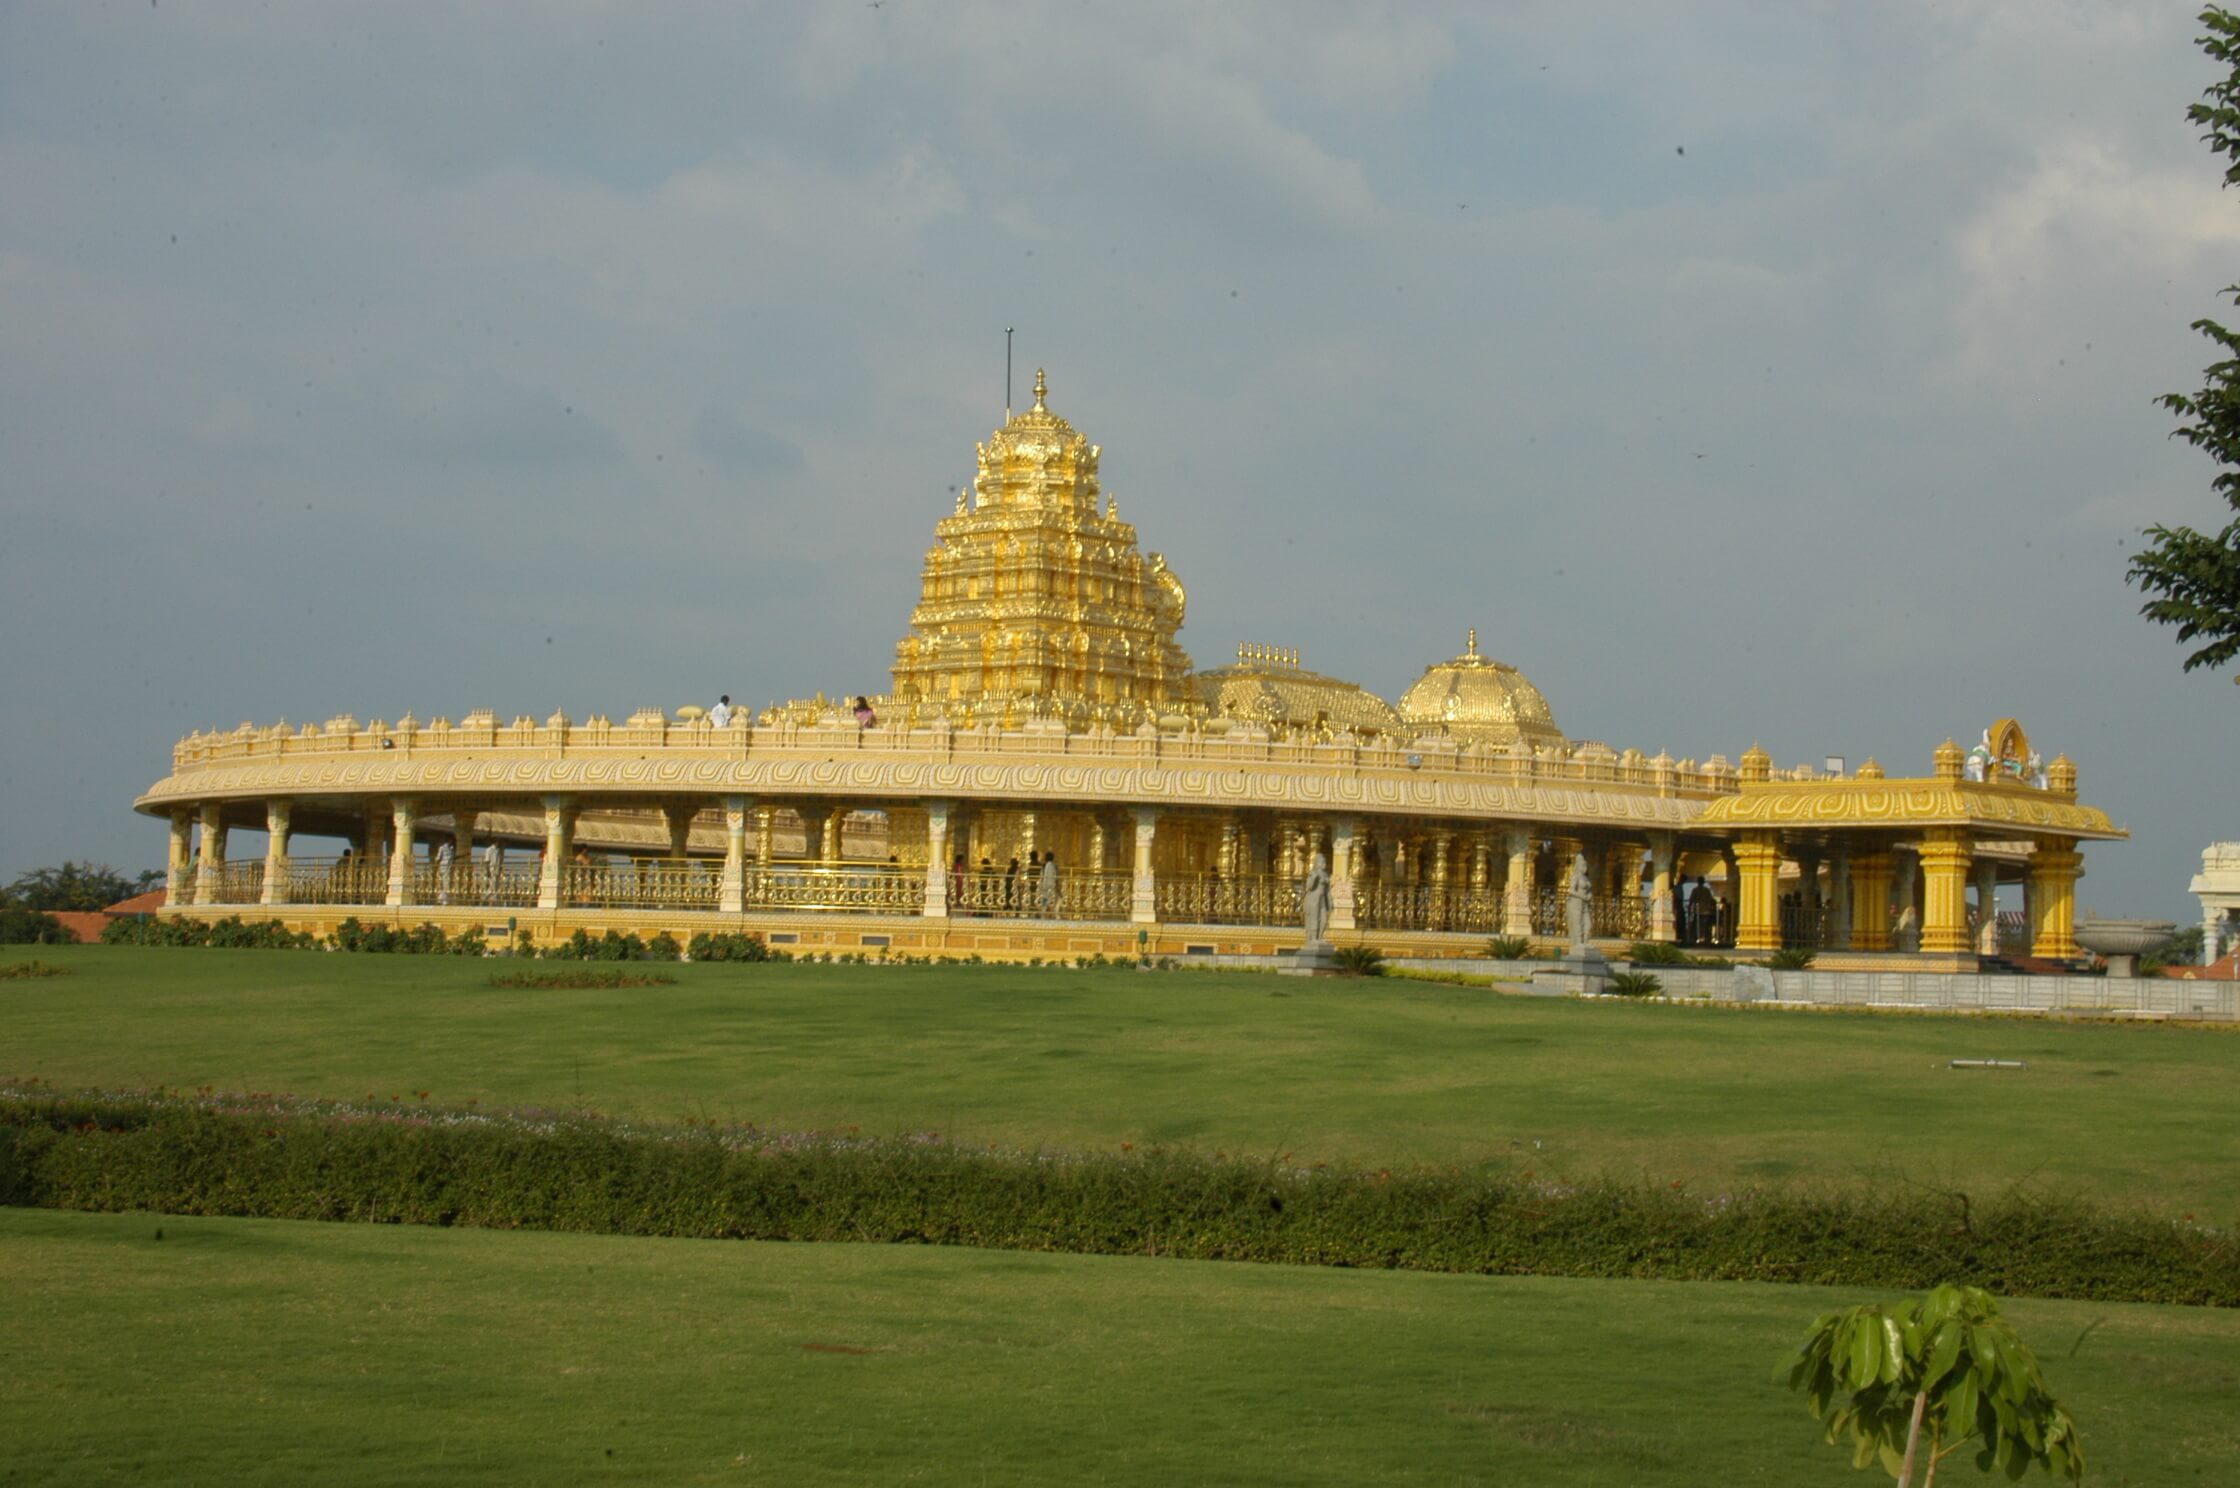 a golden temple